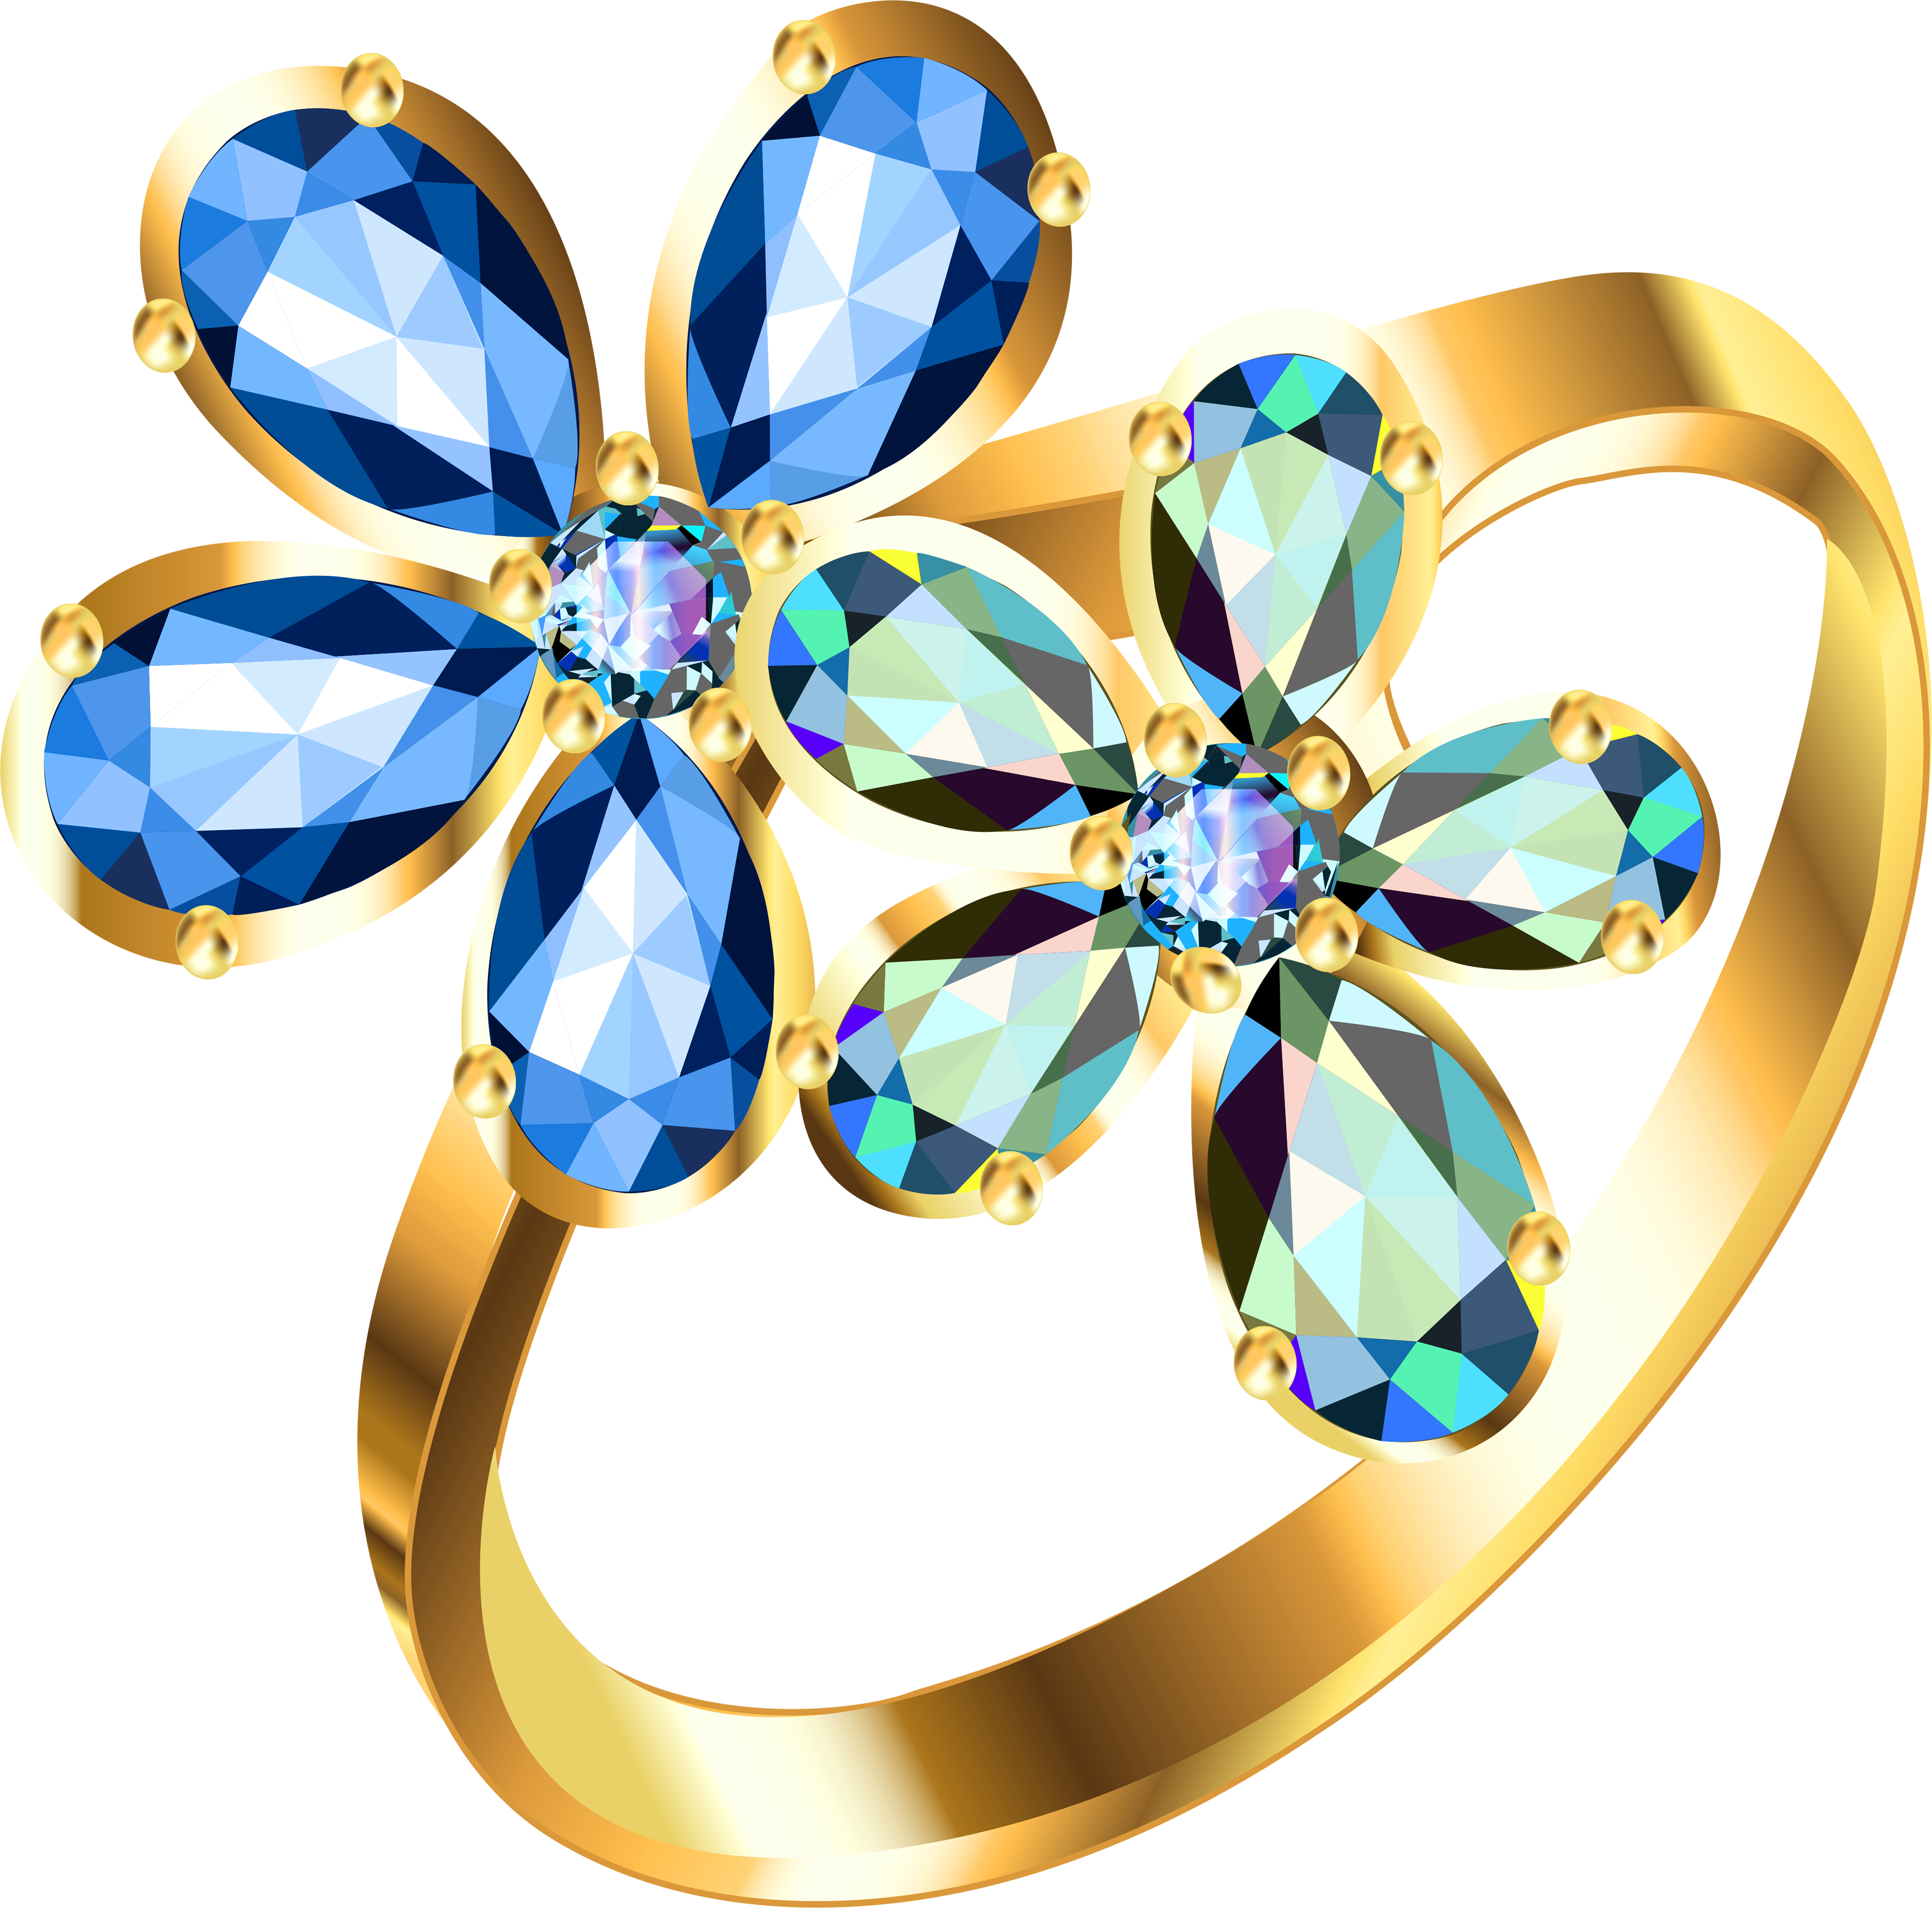 Gold Ring Png Image Jewelry Gold Rings Jewelry Making Pearls